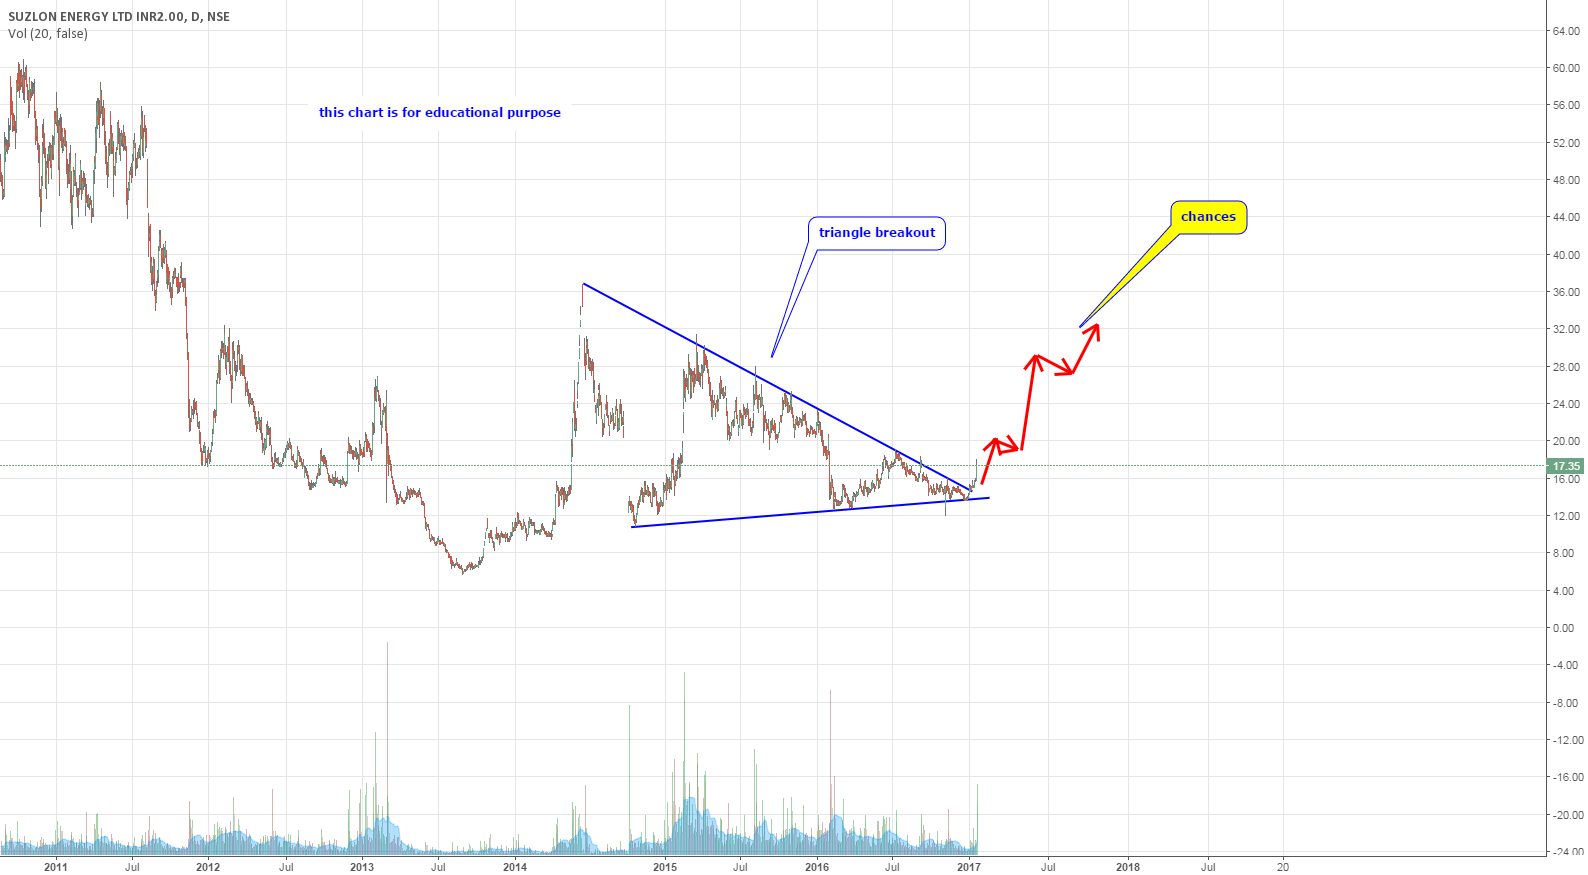 suzlon and  triangle